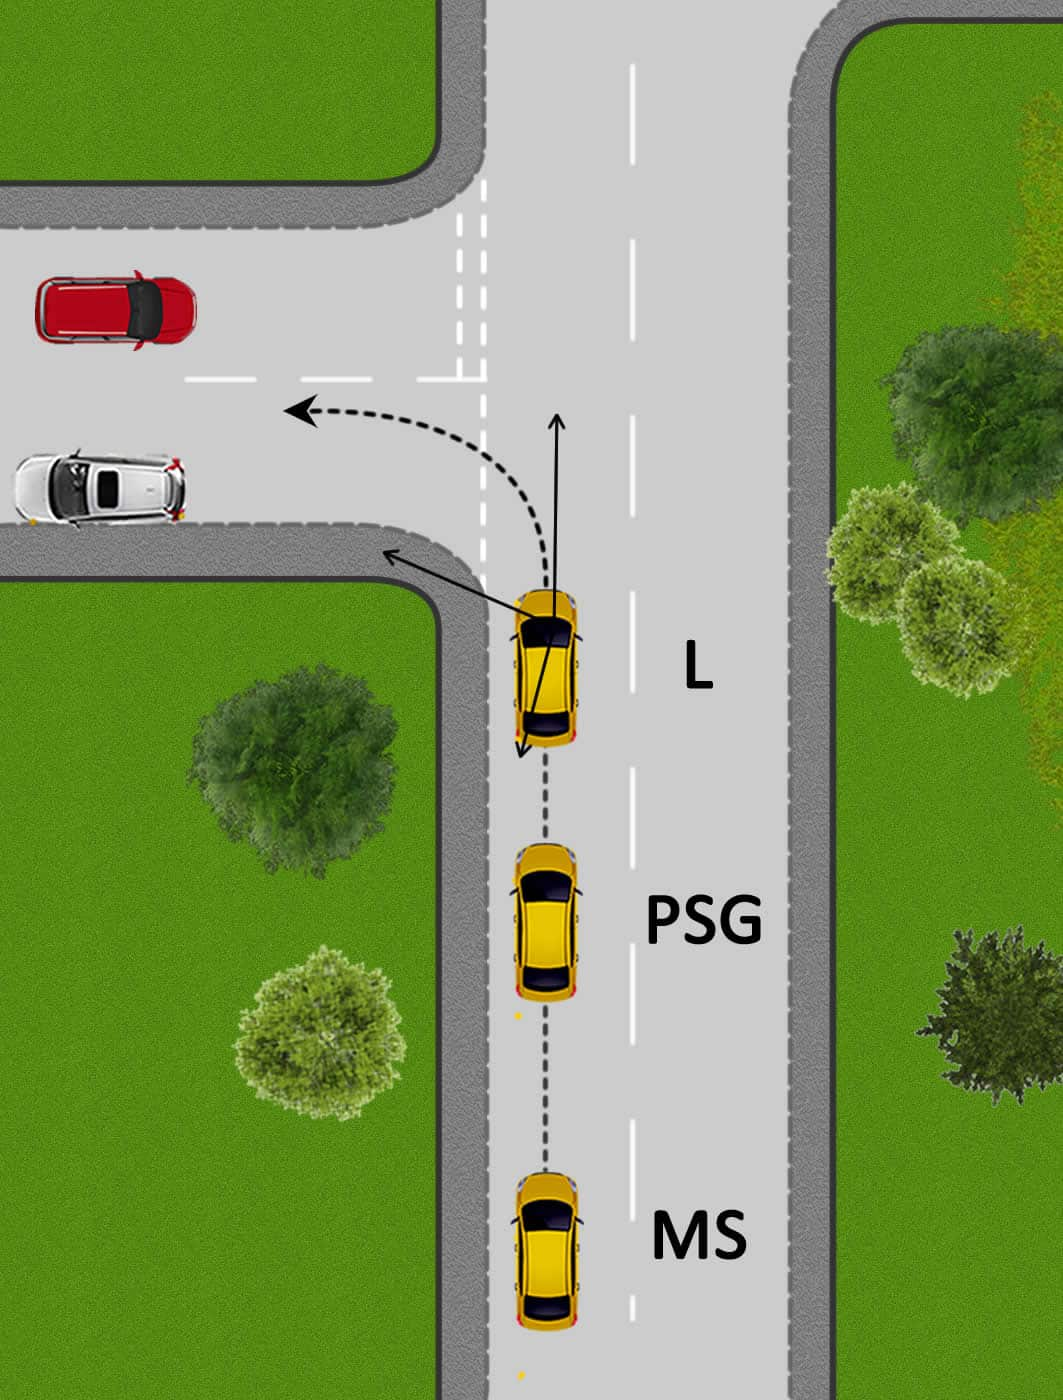 Turning left into a side road